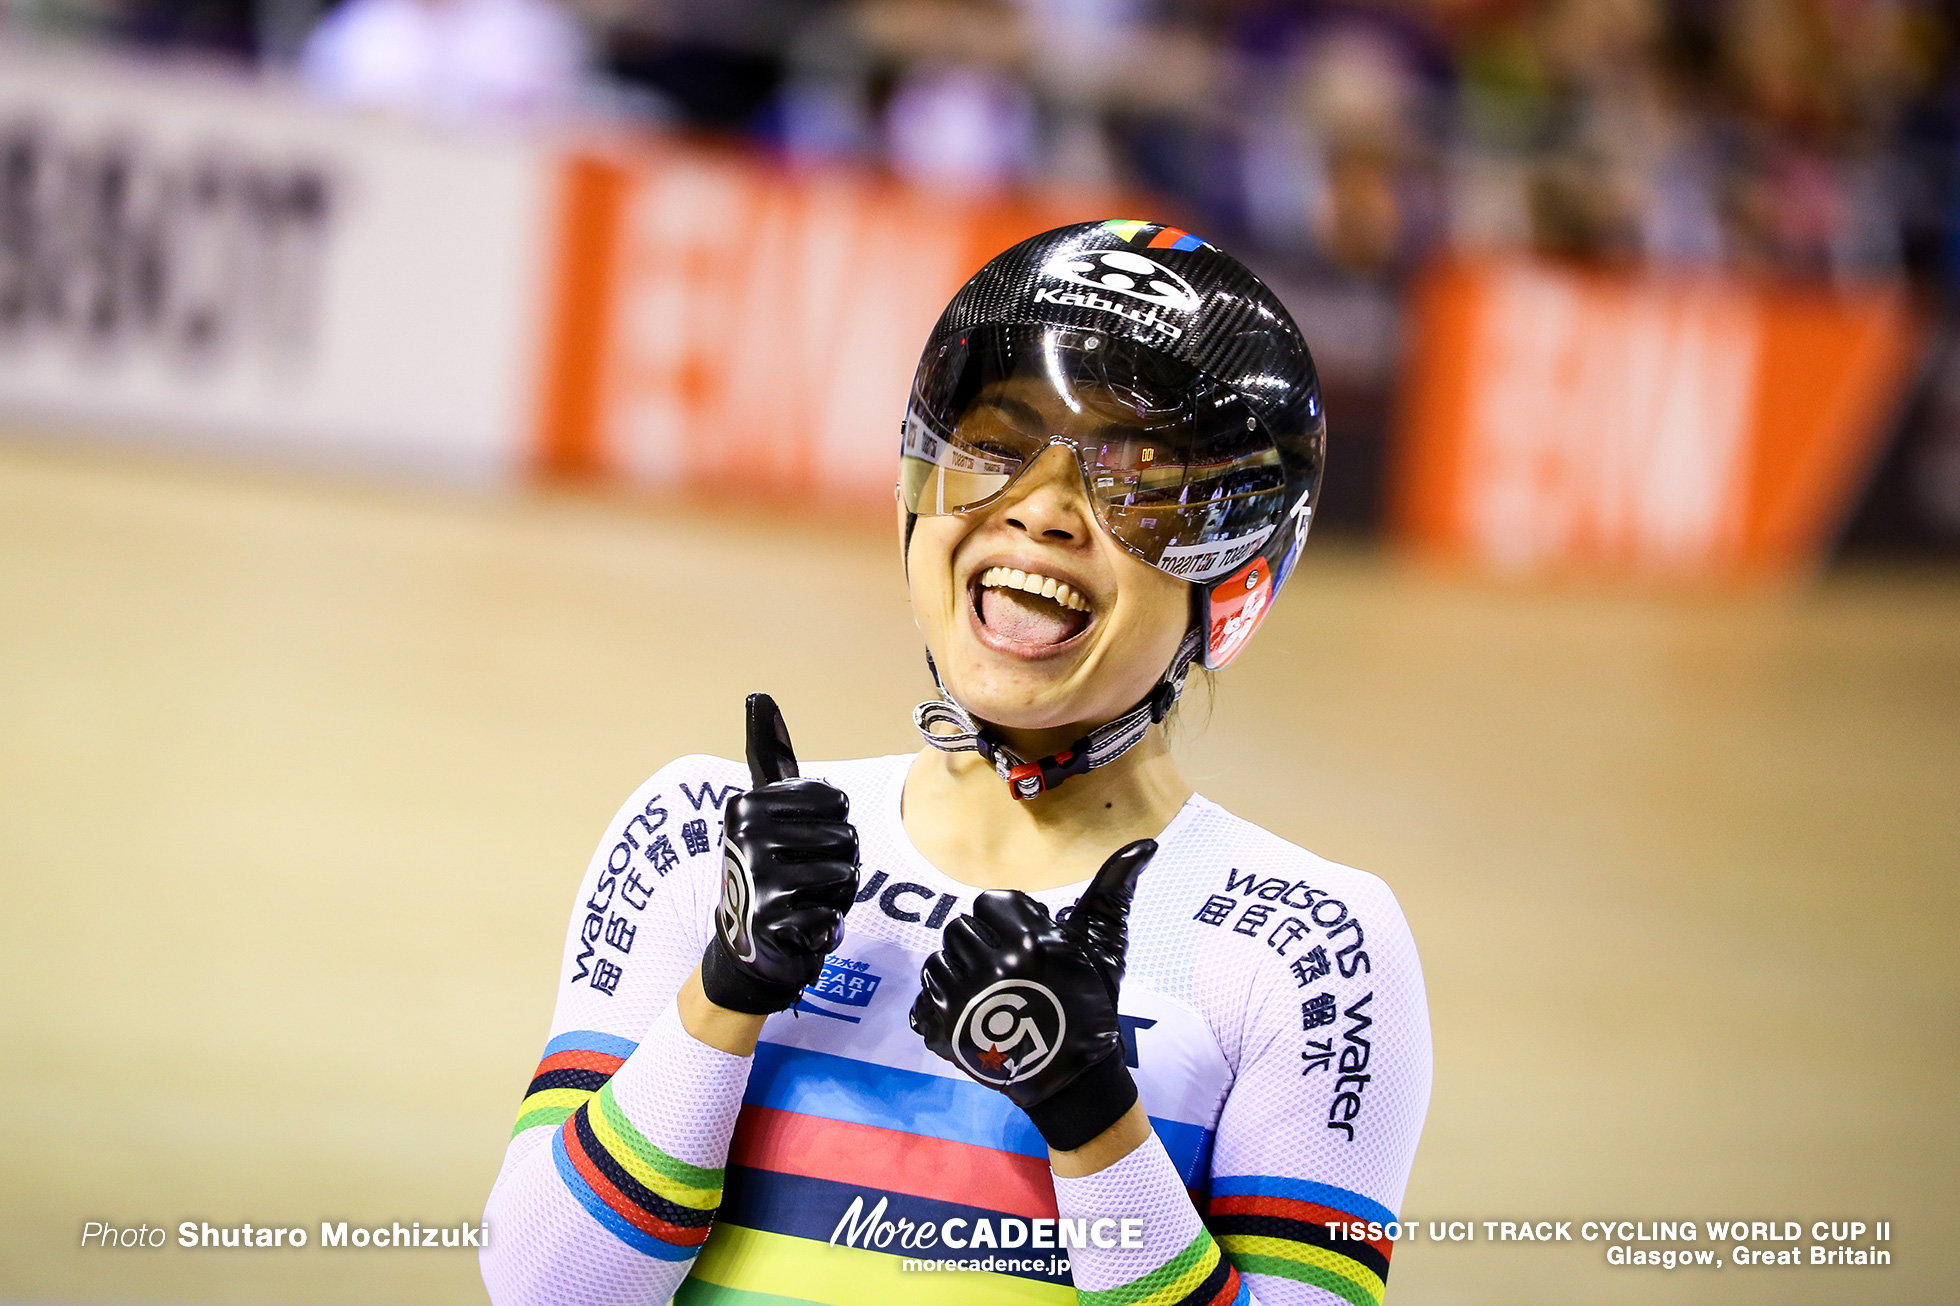 Lee Wai Sze (HKG), Final / Women's Sprint / TISSOT UCI TRACK CYCLING WORLD CUP II, Glasgow, Great Britain リー・ワイジー 李慧詩